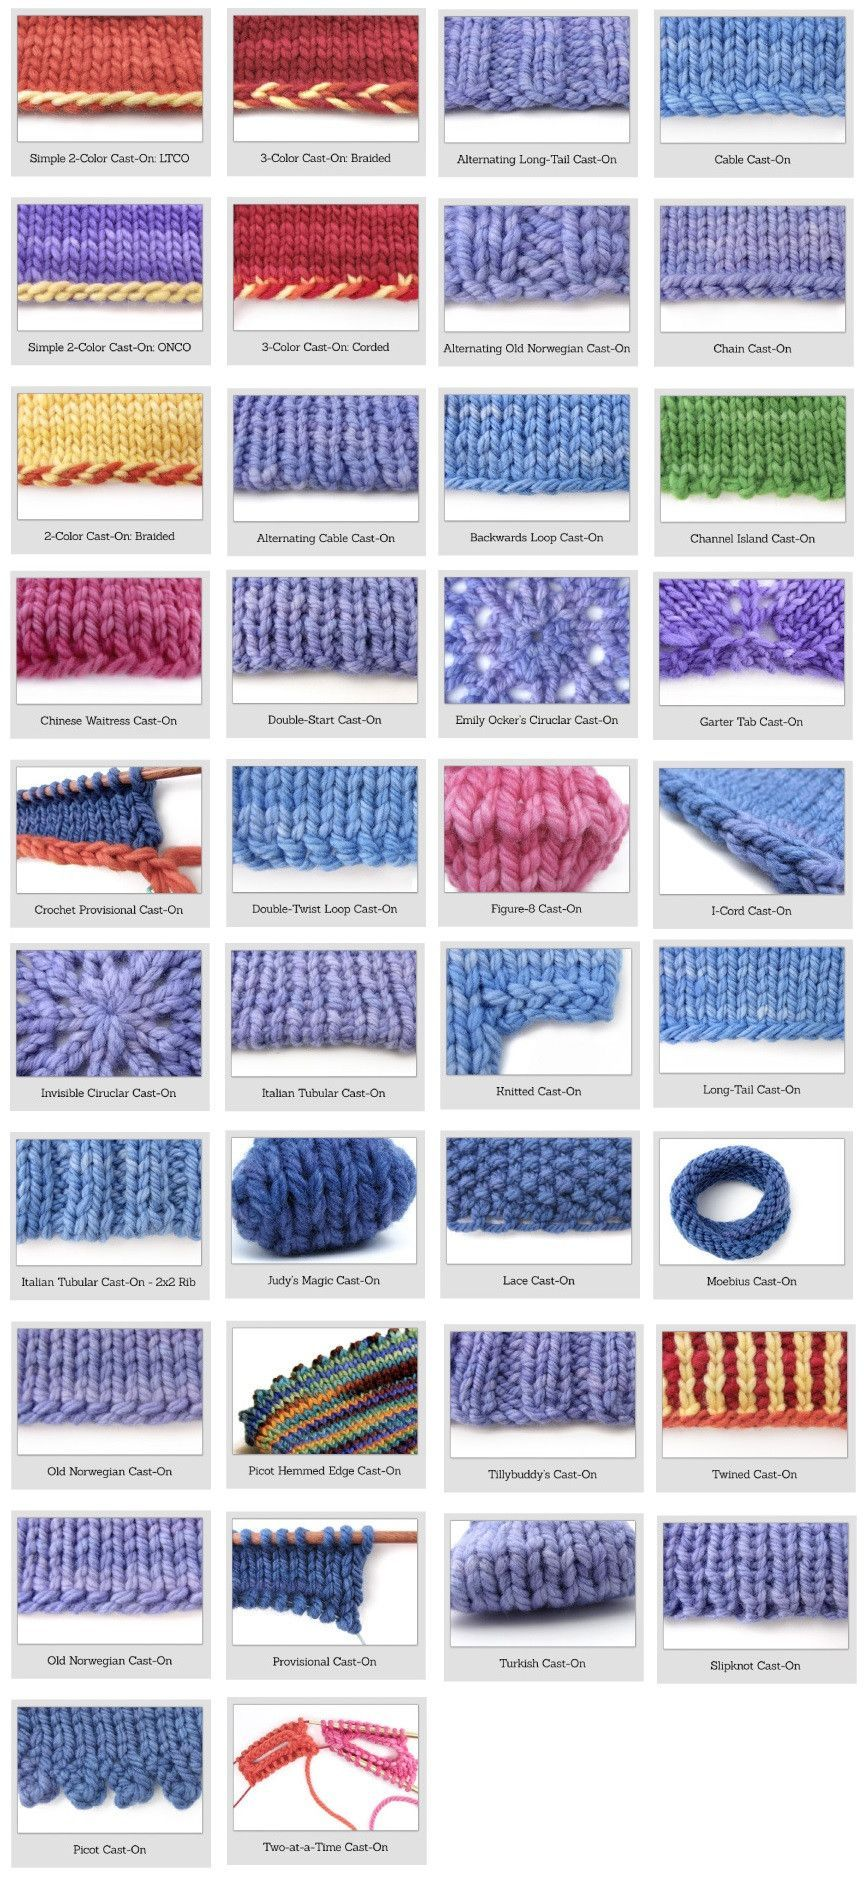 Follow Up Different Types Of Cast On Knitting Knitting Stitches